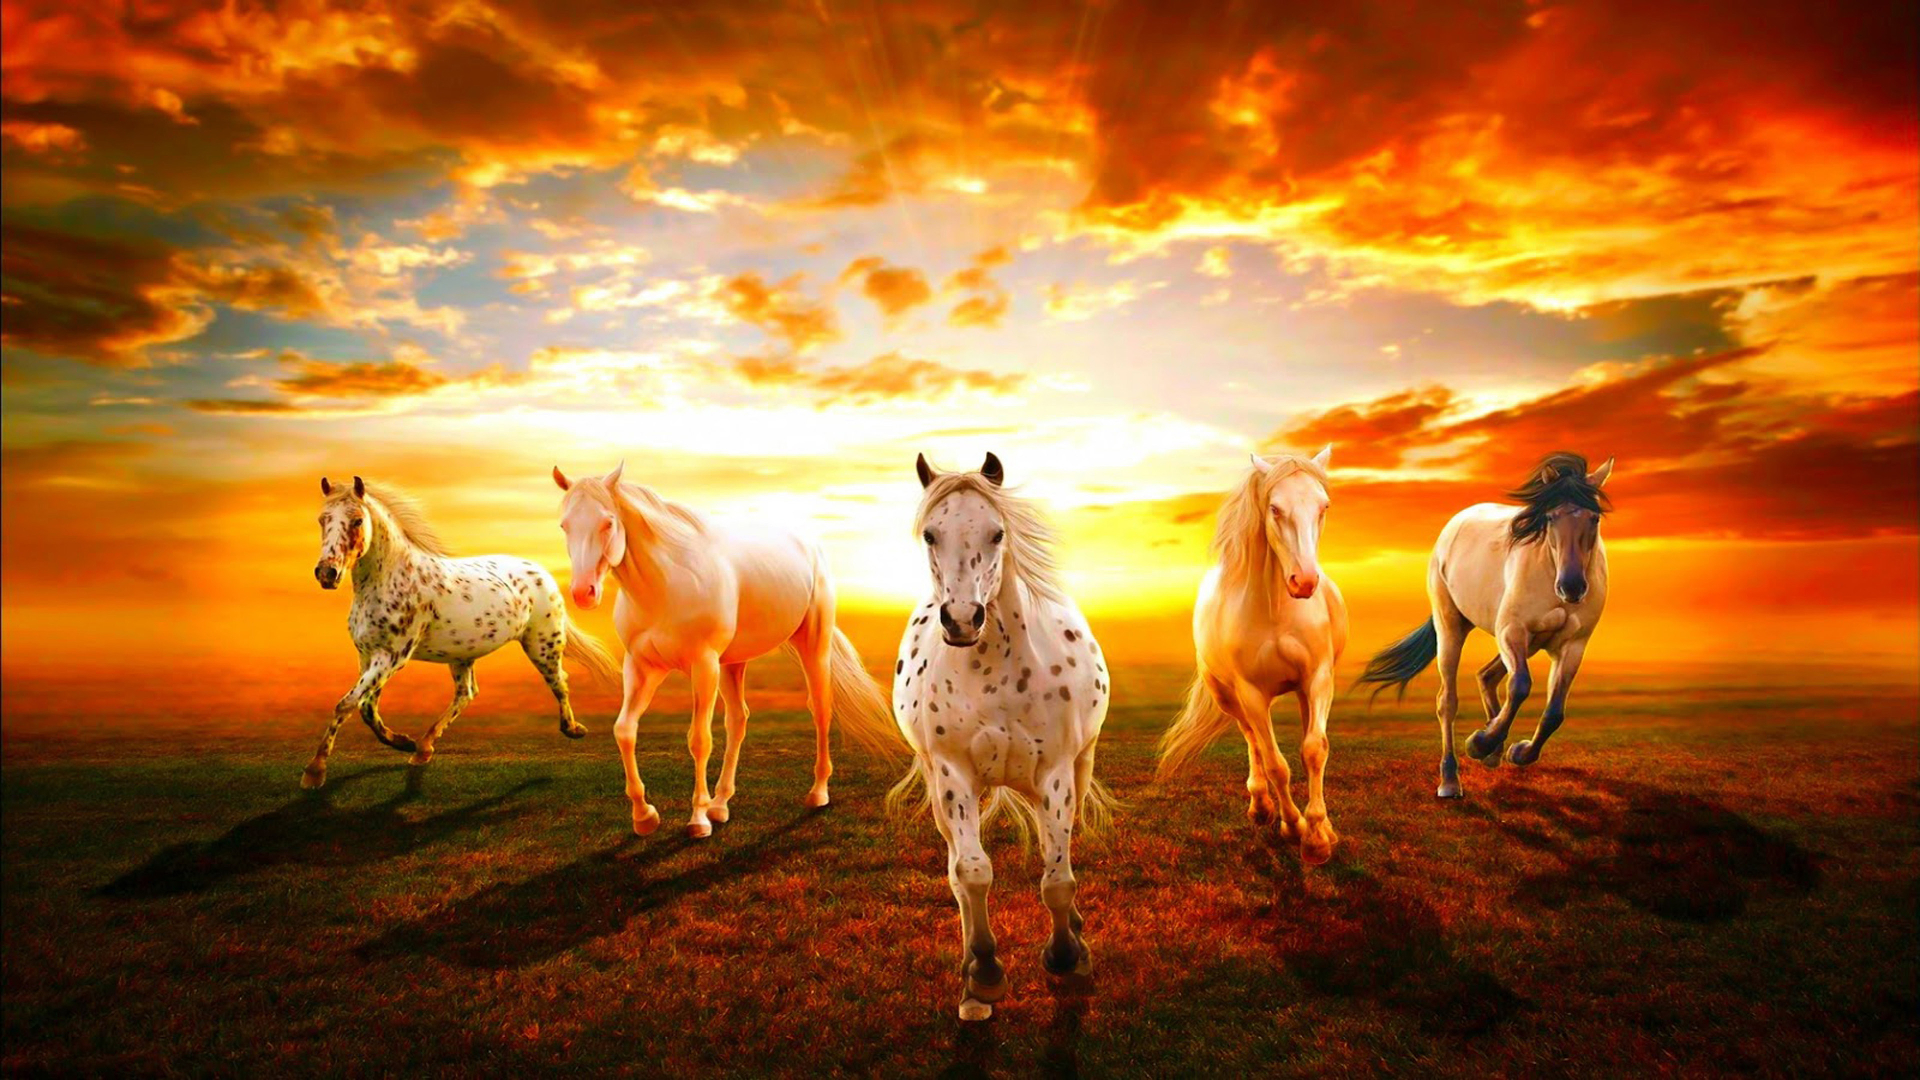 a group of wild horses racing at sunset